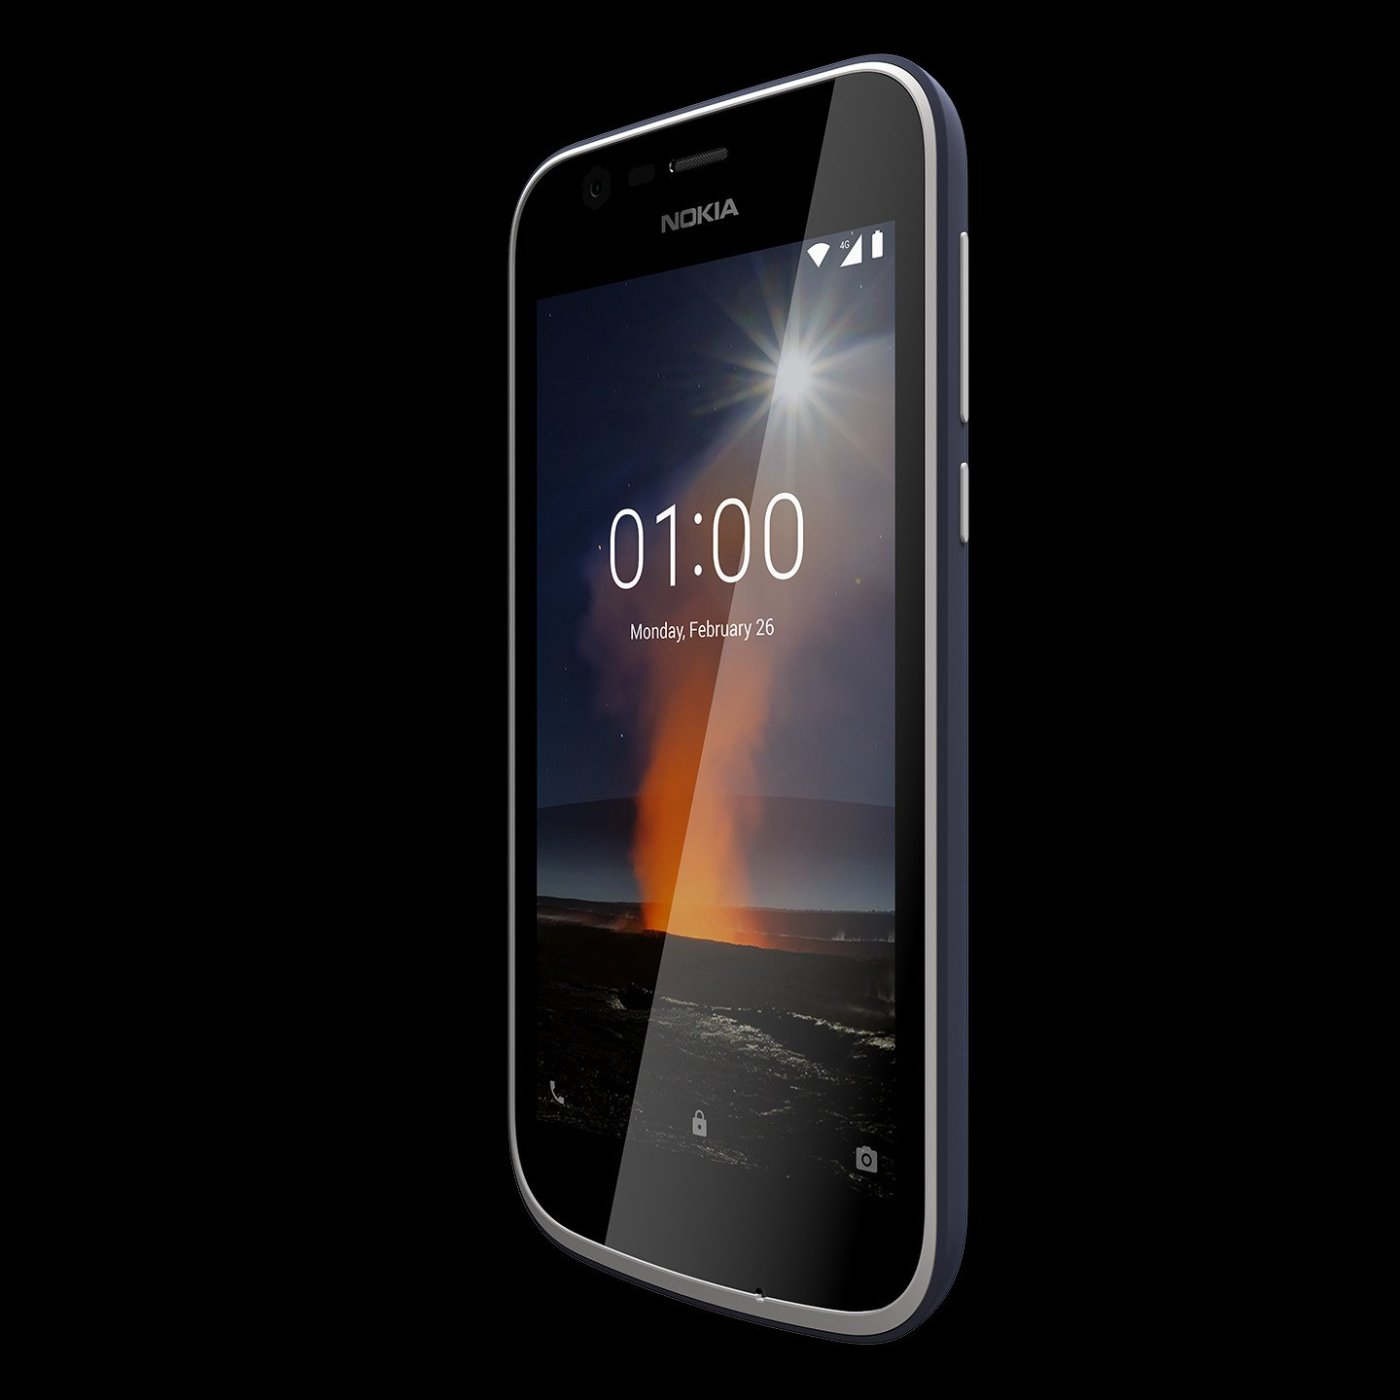 Nokia is hitting Canadian Market full force with its new Smartphone lineup!